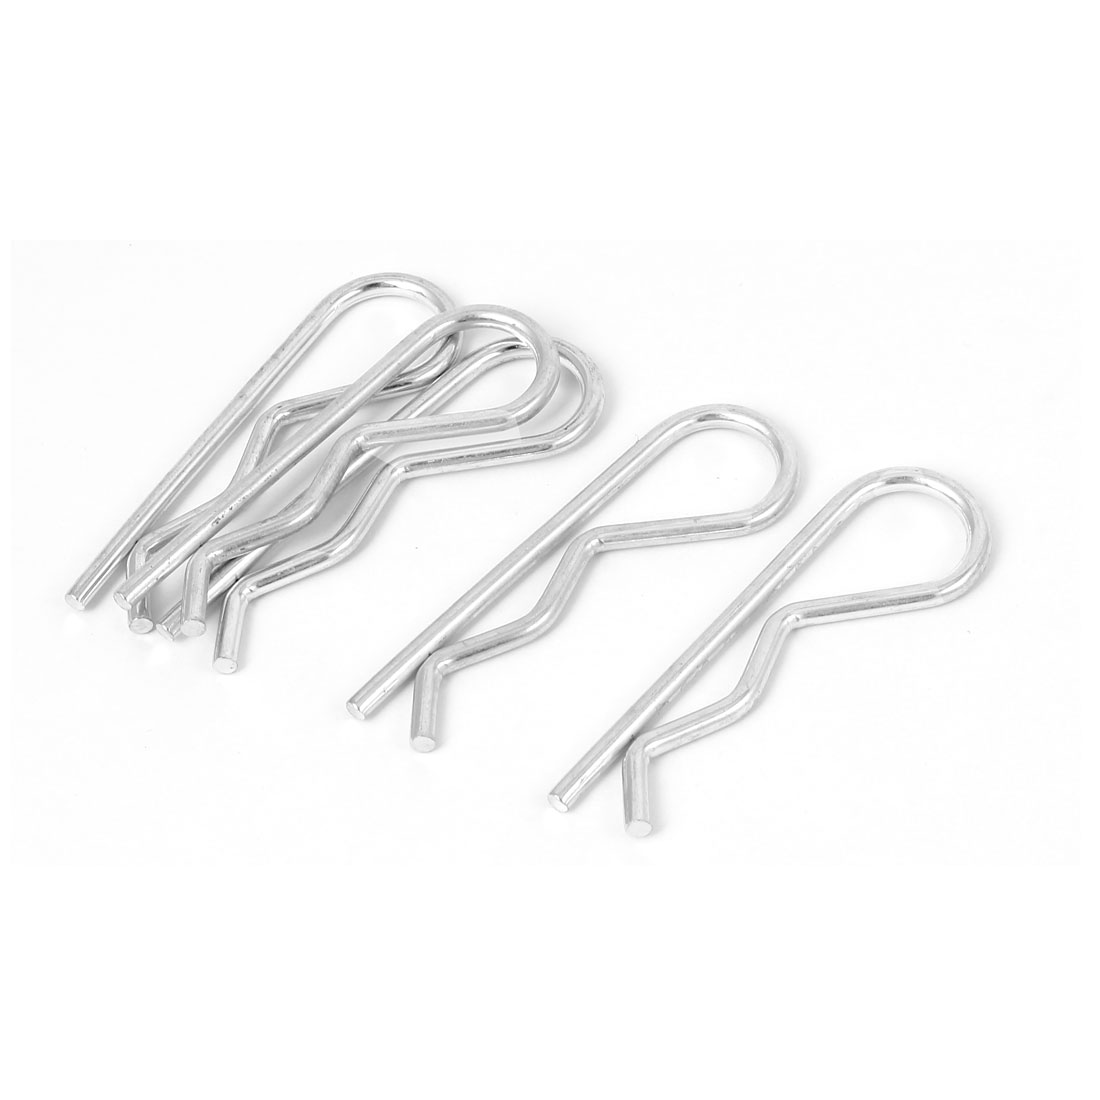 3.5mm x 65mm R-Clip Spring Cotter Tractor Pins Silver Tone 5 Pcs